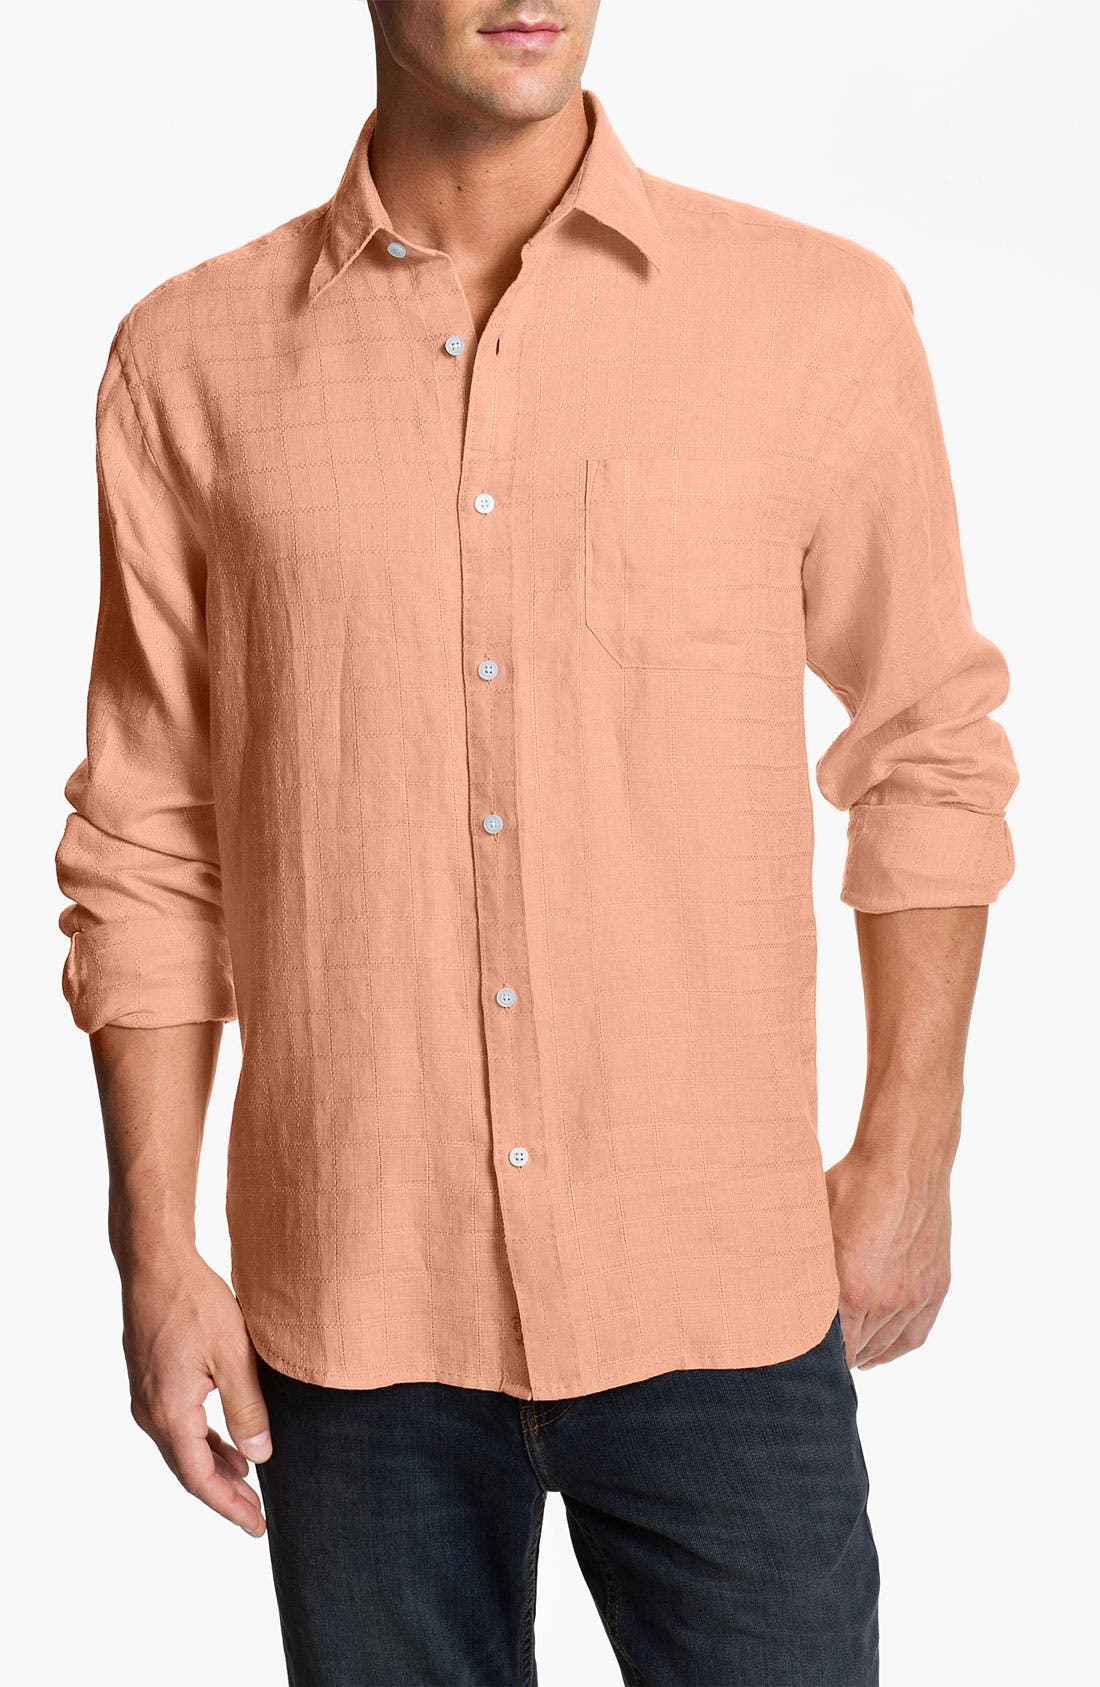 Main Image - Tommy Bahama 'Costa Sera' Linen Sport Shirt (Big & Tall)